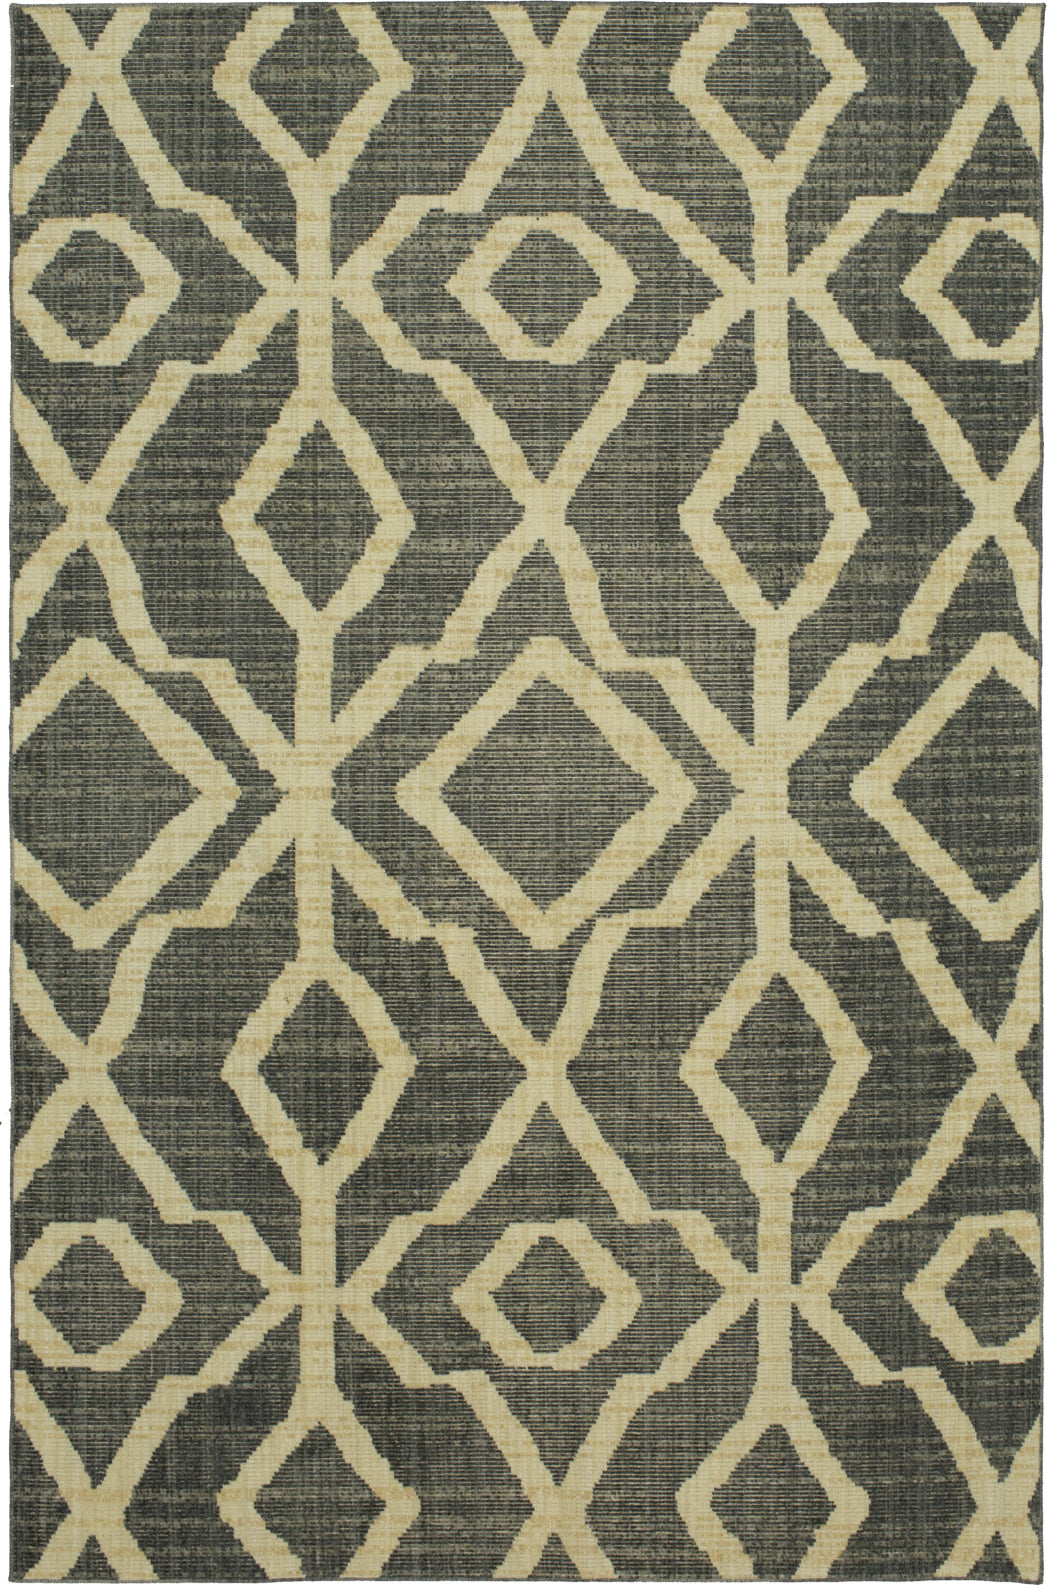 Karastan Vintage Tapis Illume Denim Area Rug by Patina Vie main image